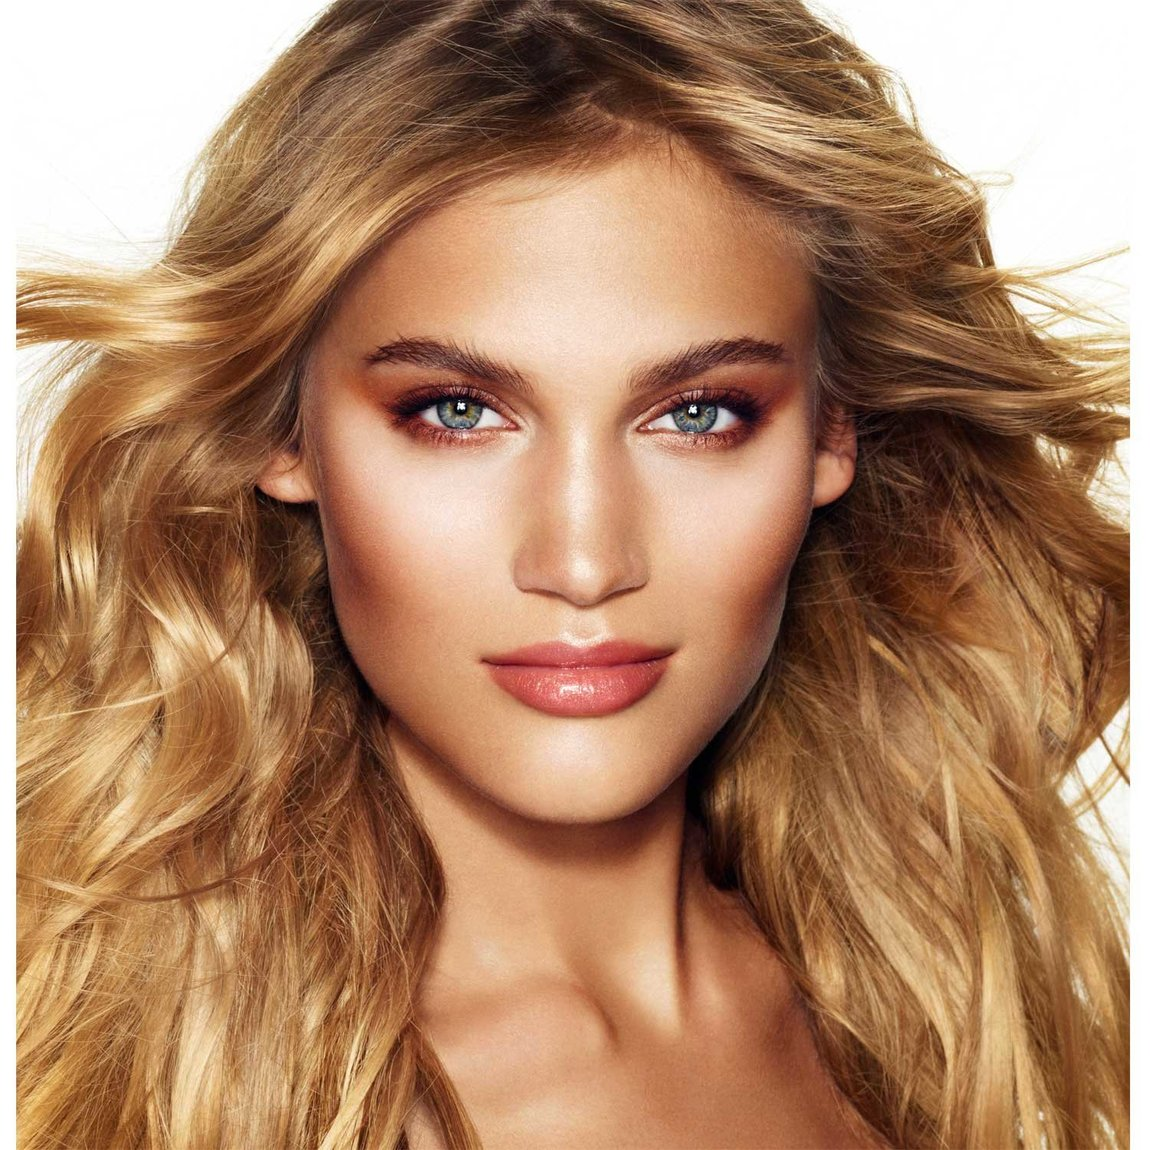 Charlotte Tilbury Get the Look The Golden Goddess product smear.